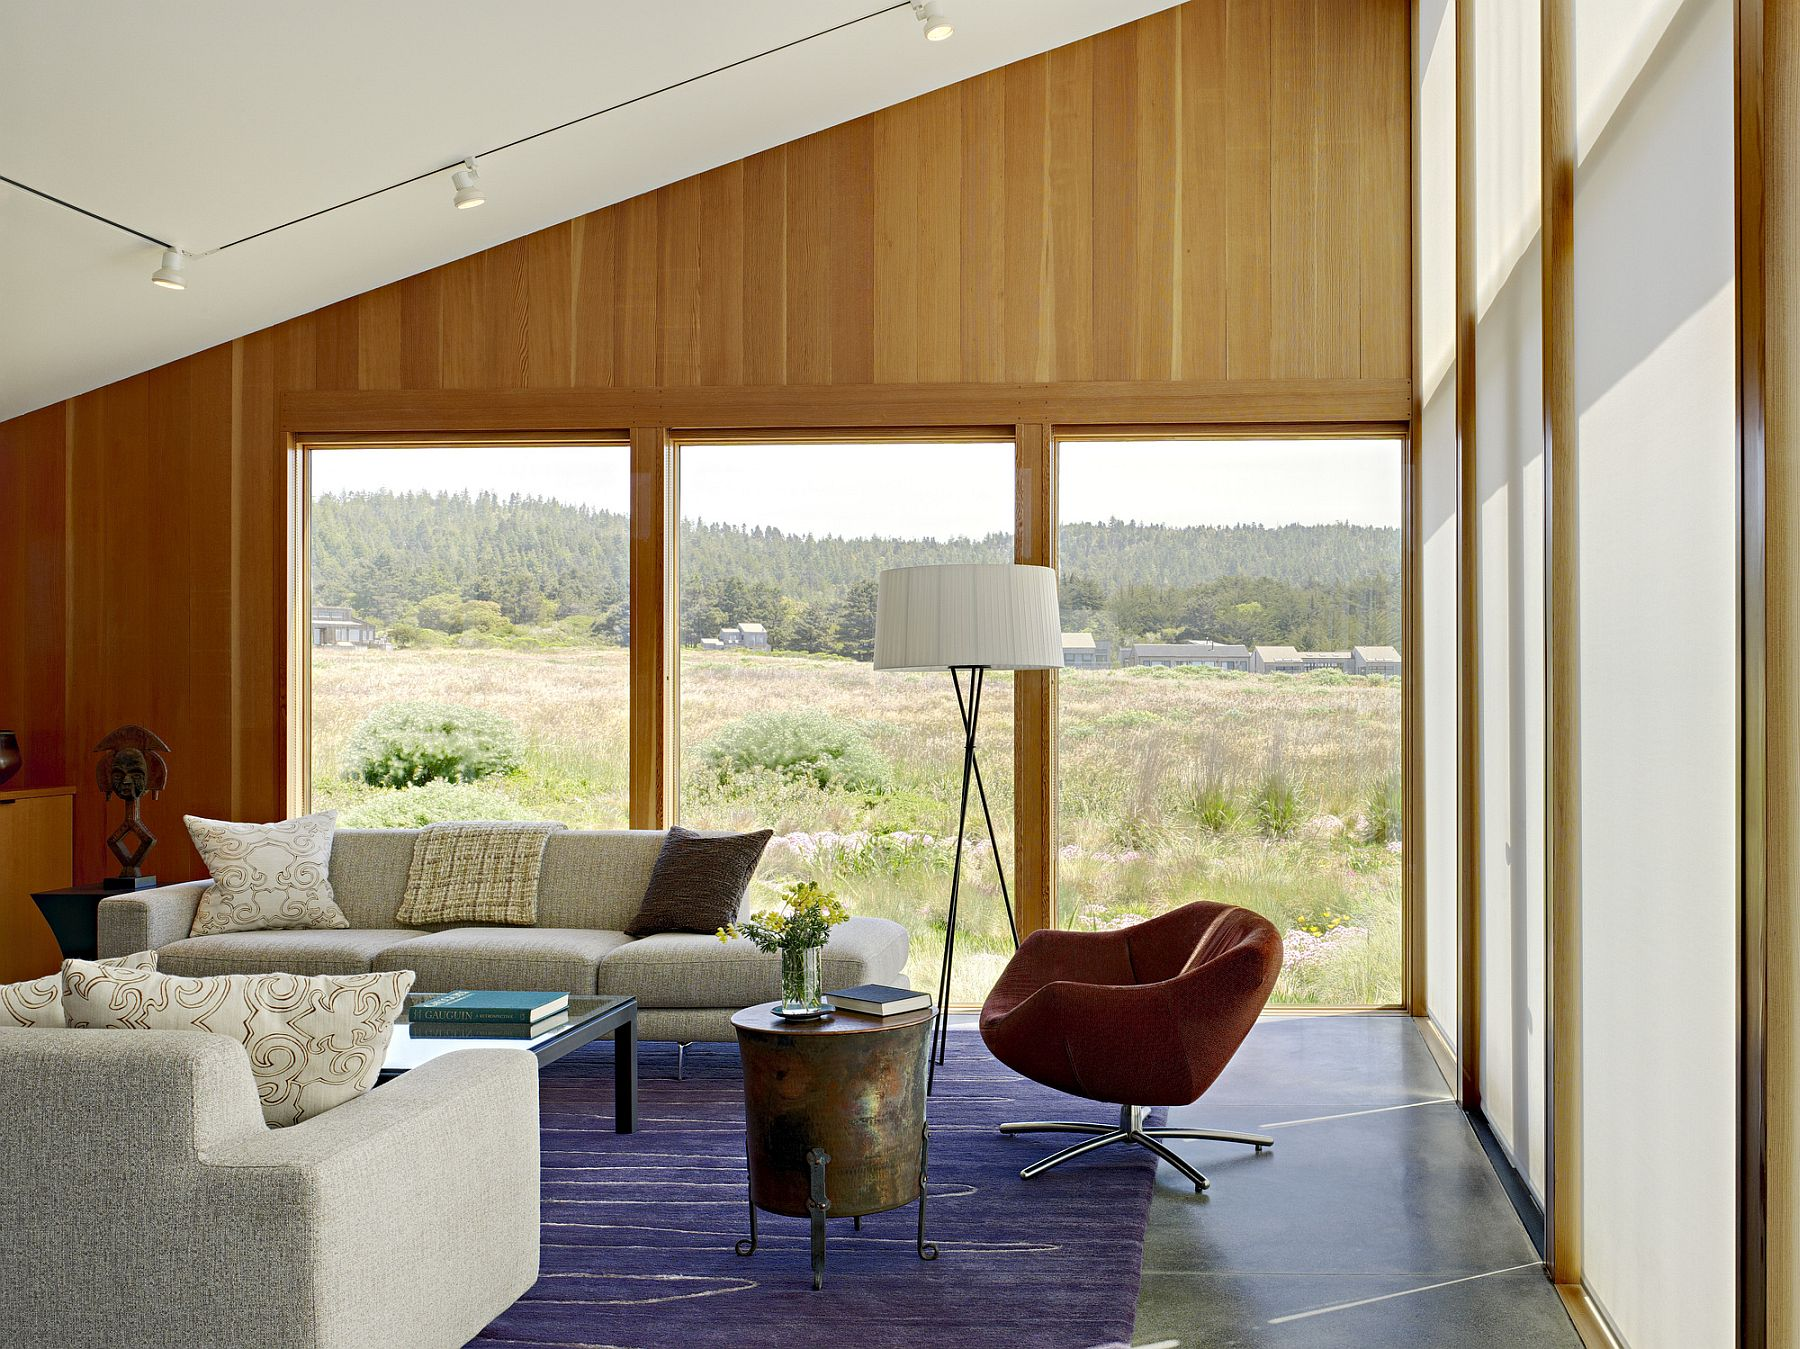 Track lighting and natural light illuminate the living area